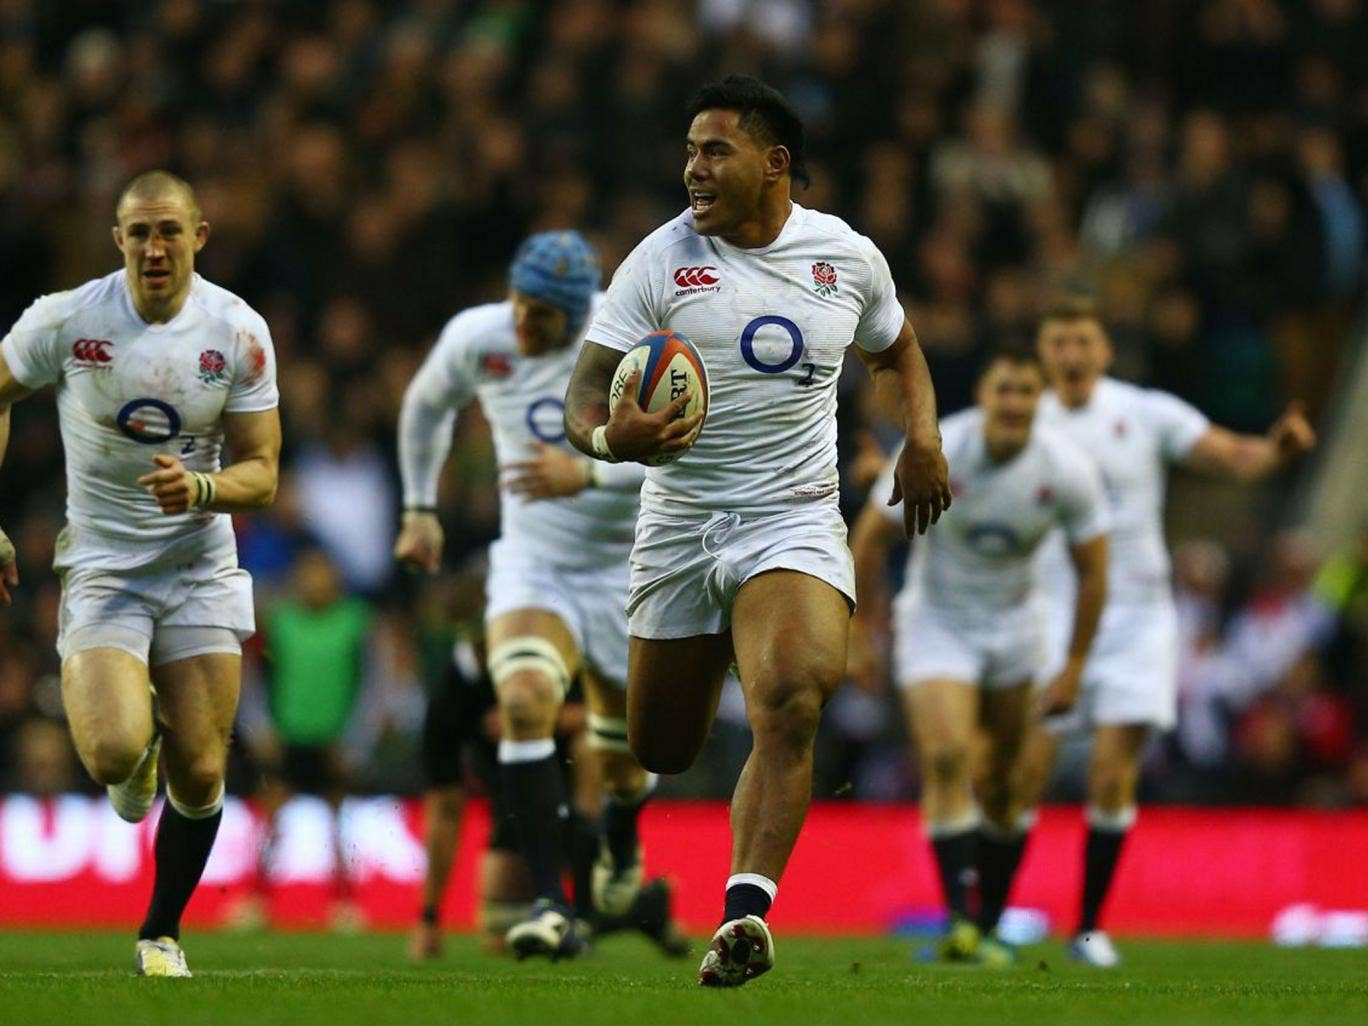 Manu Tuilagi powers towards the line to score against New Zealand